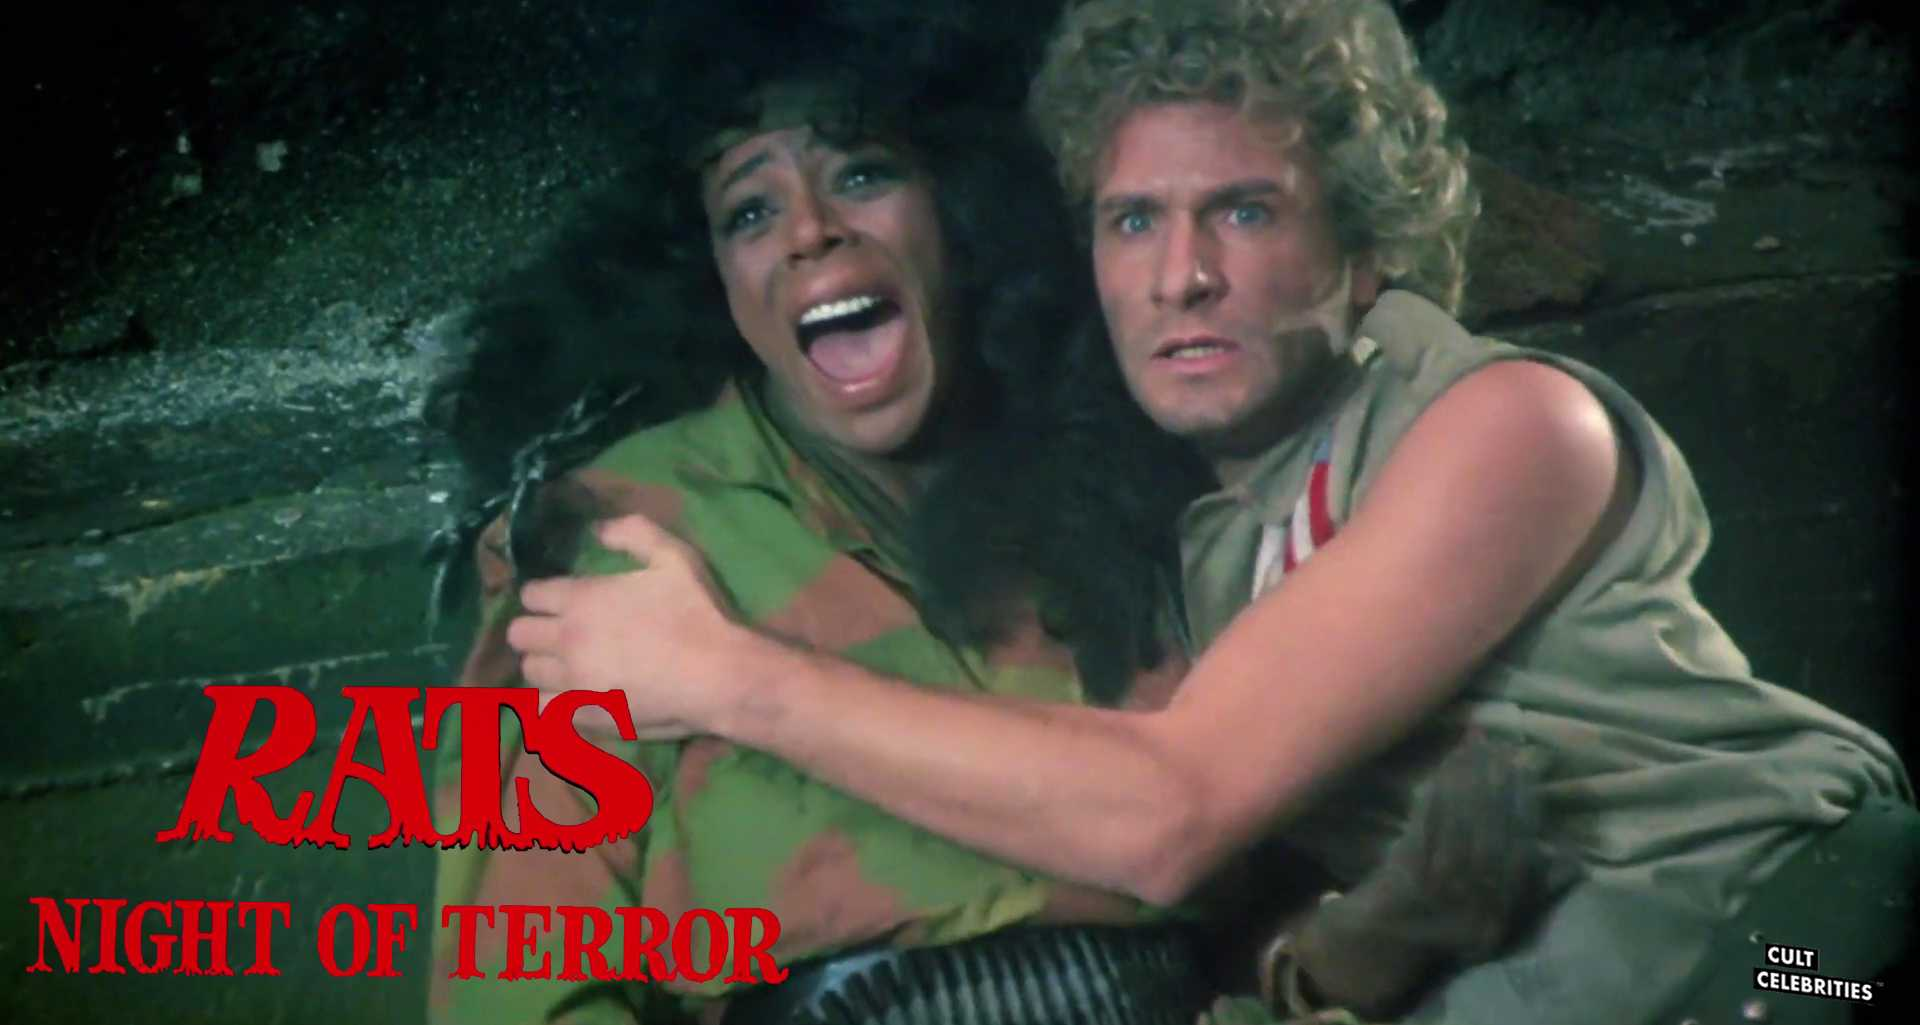 Geretta Geretta in Rats Night of Terror (1984)